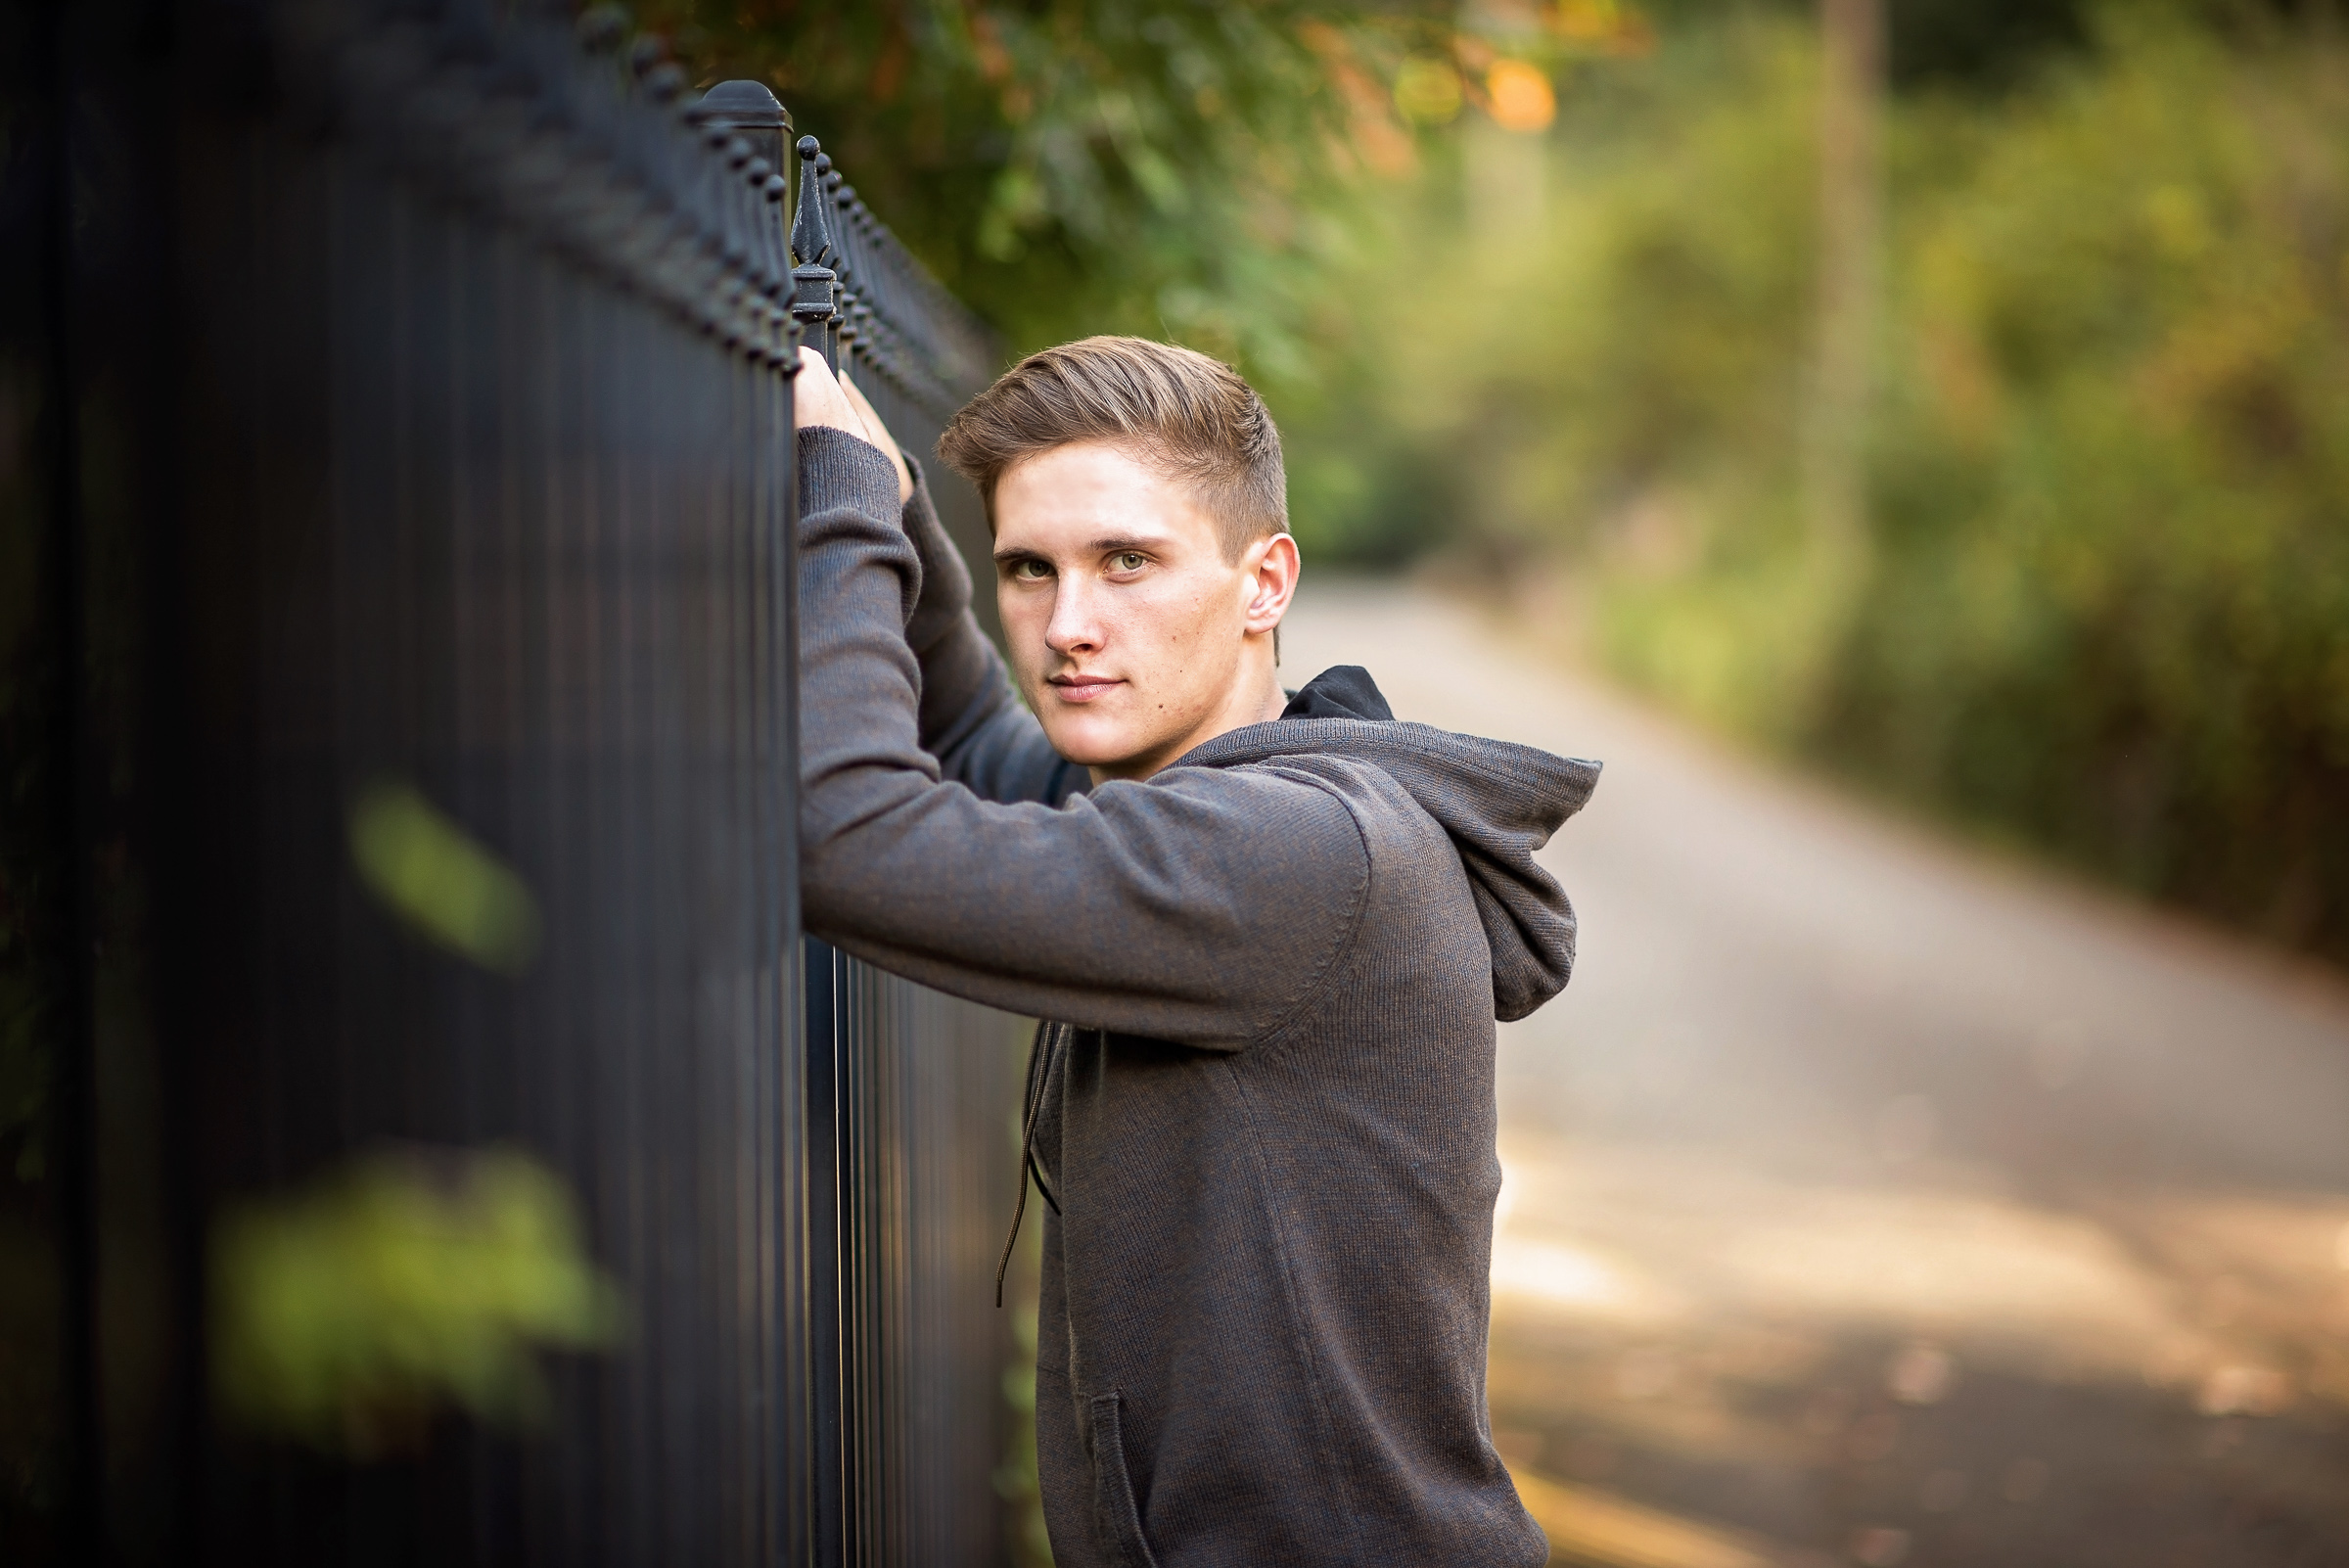 Cody's-Benbow Inn-Humboldt County-Senior Session-Parky's Pics_-19.JPG